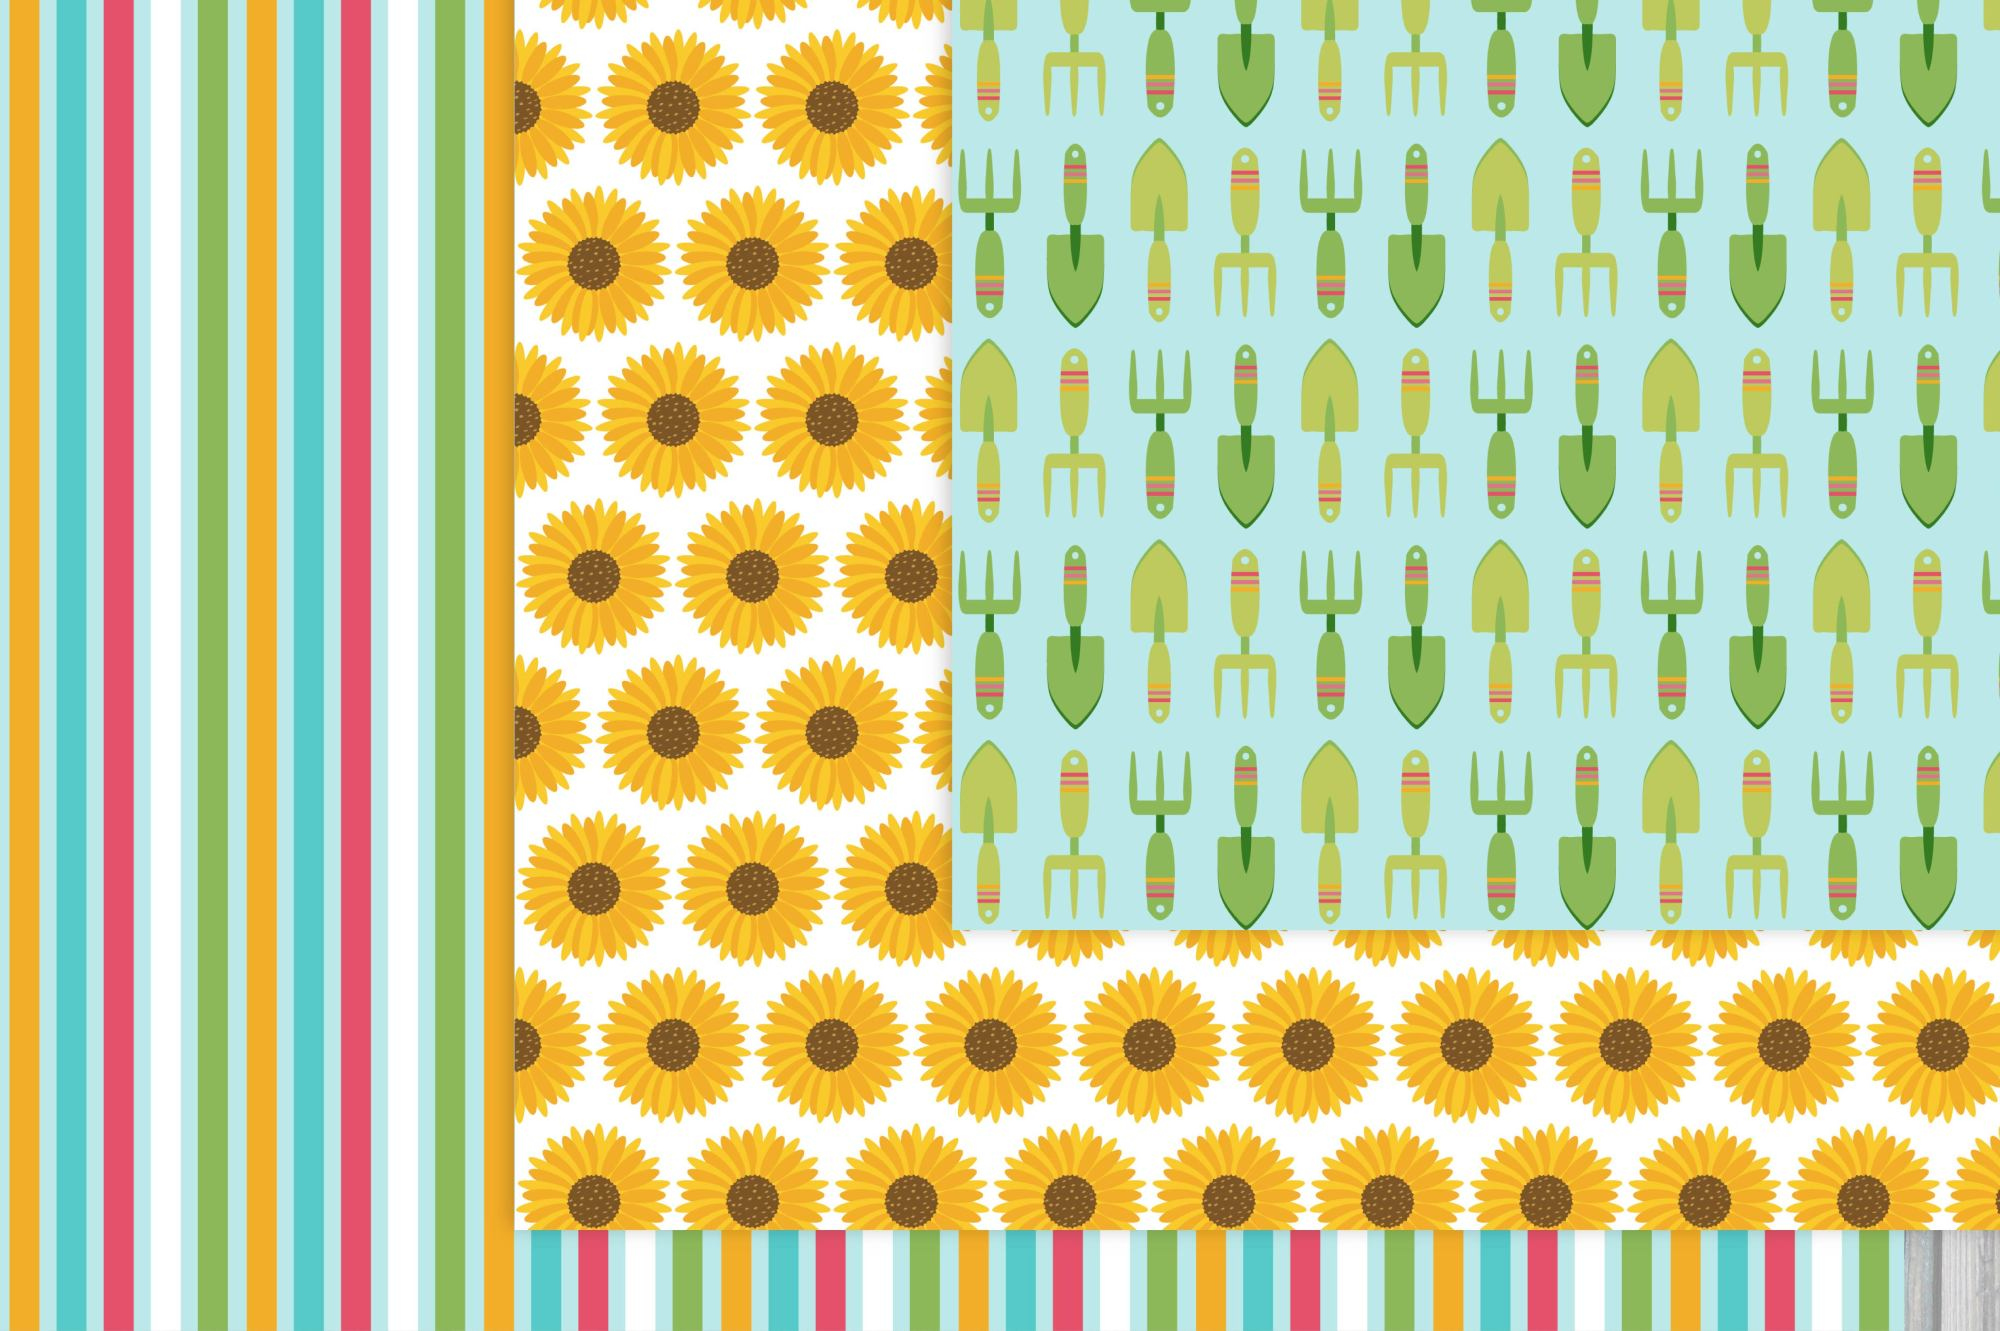 Sunflower Digital Paper example image 2